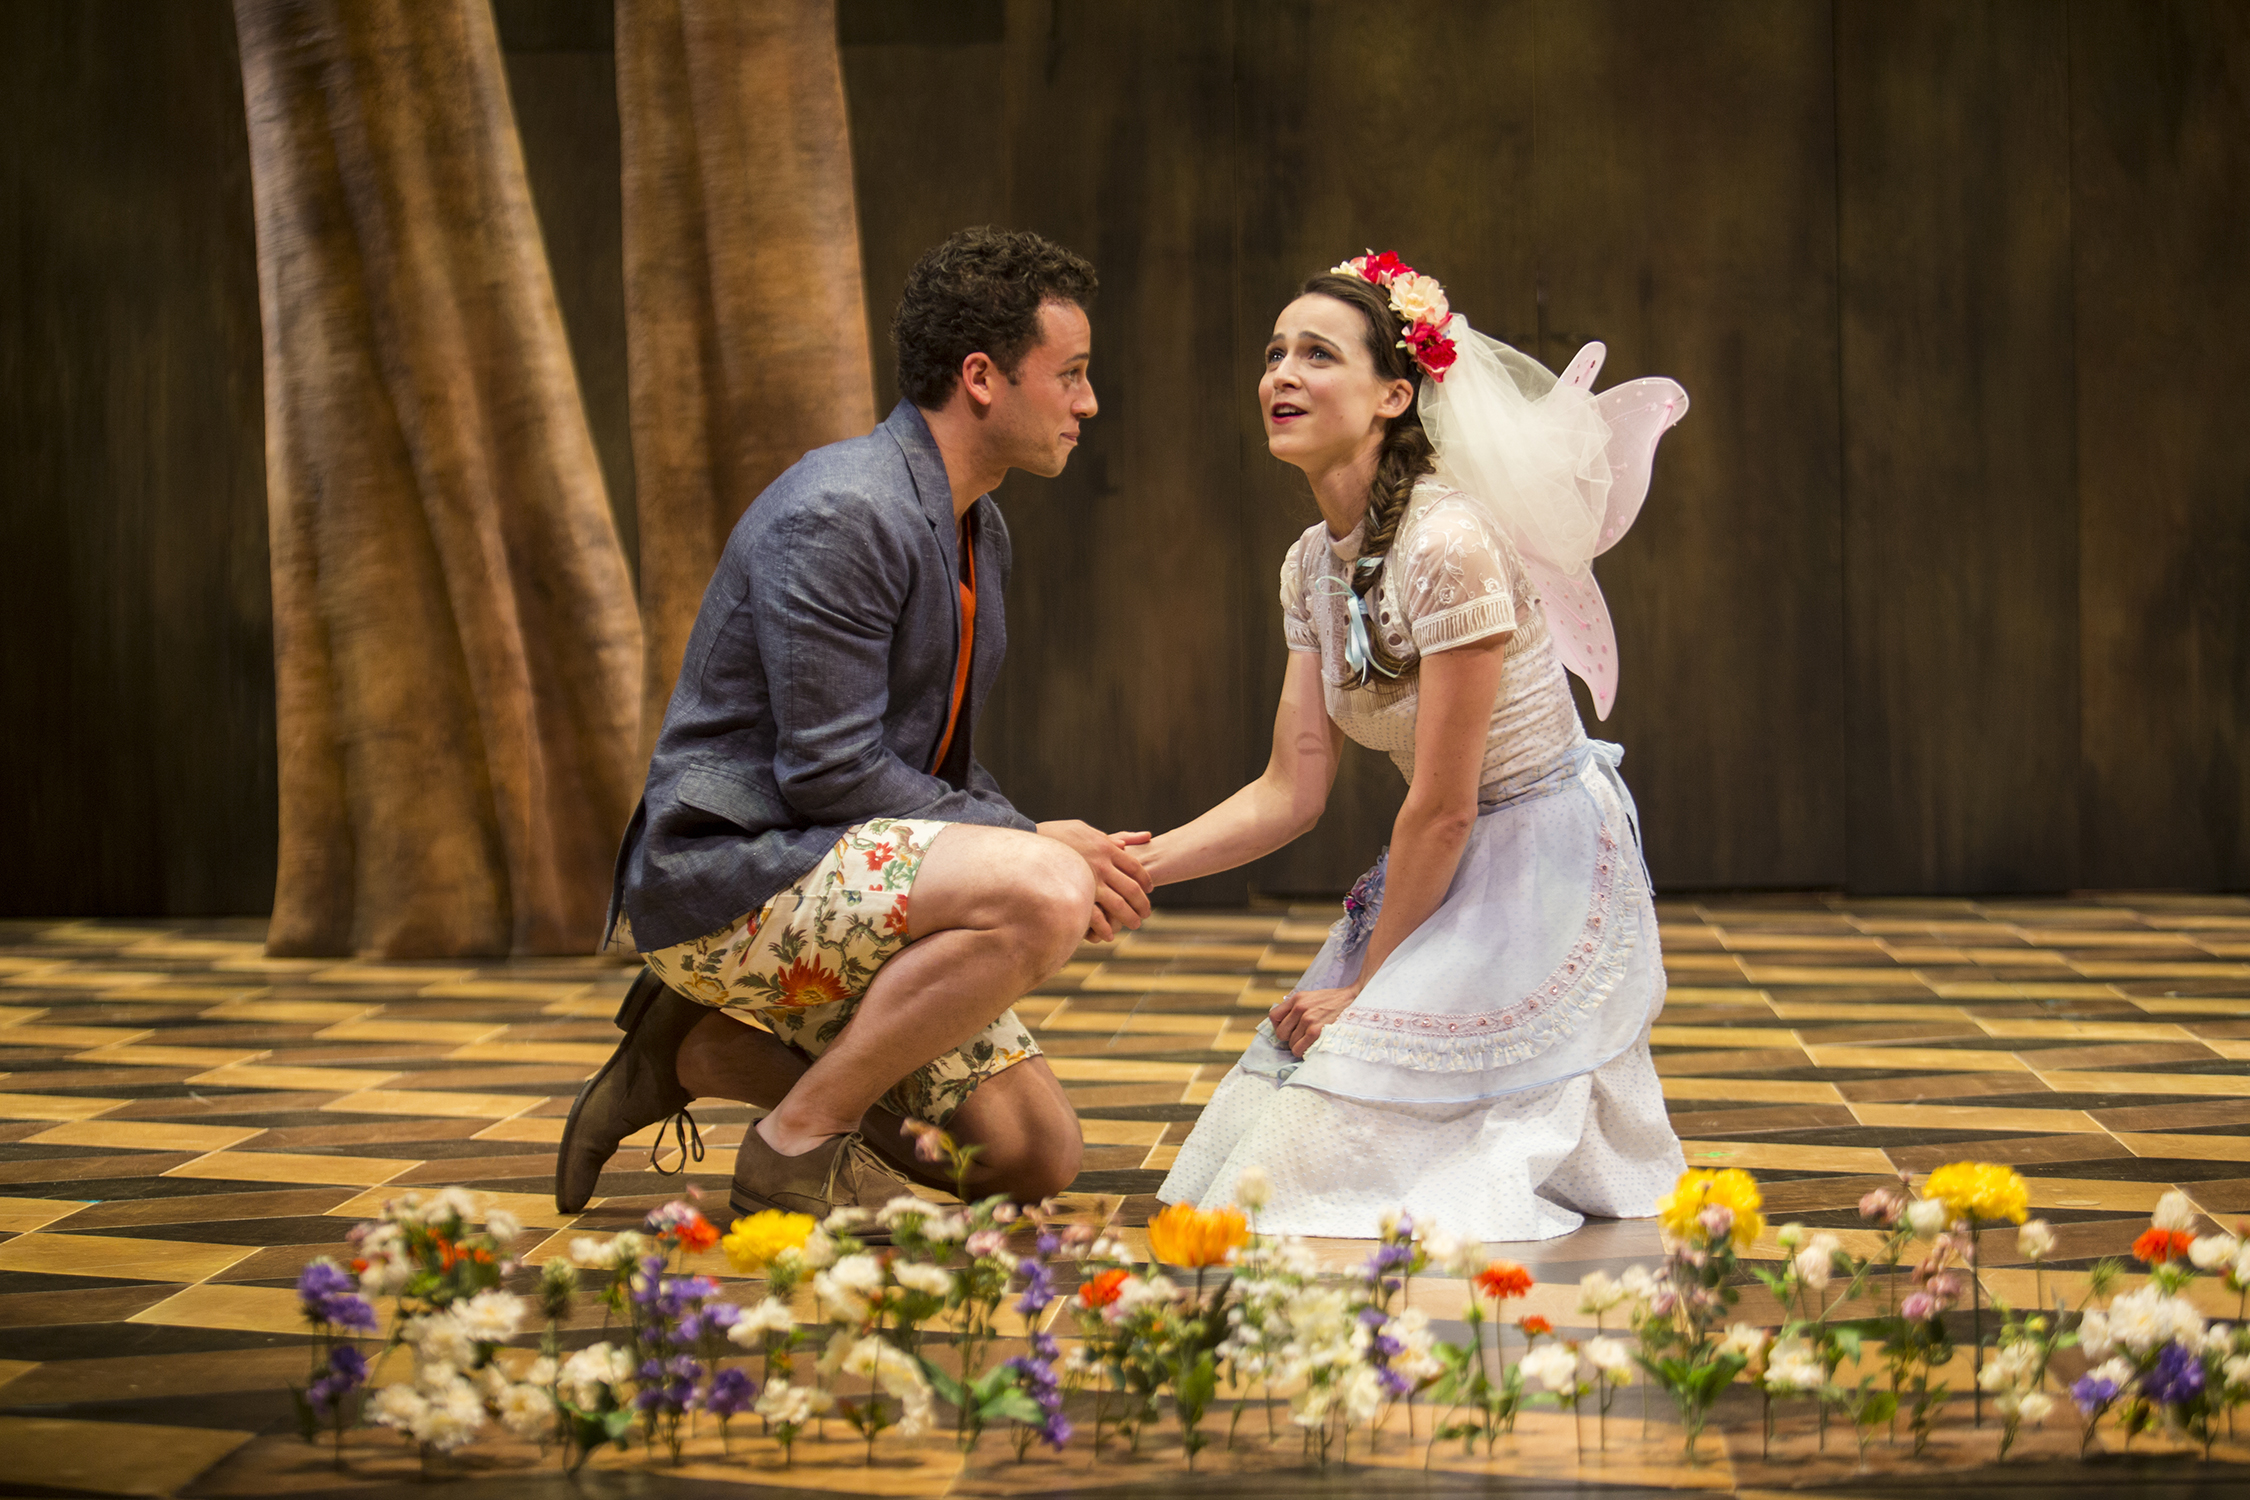 A.Z. Kelsey as Florizel and Maya Kazan as Perdita in The Winter's Tale at the The Old Globe in San Diego.